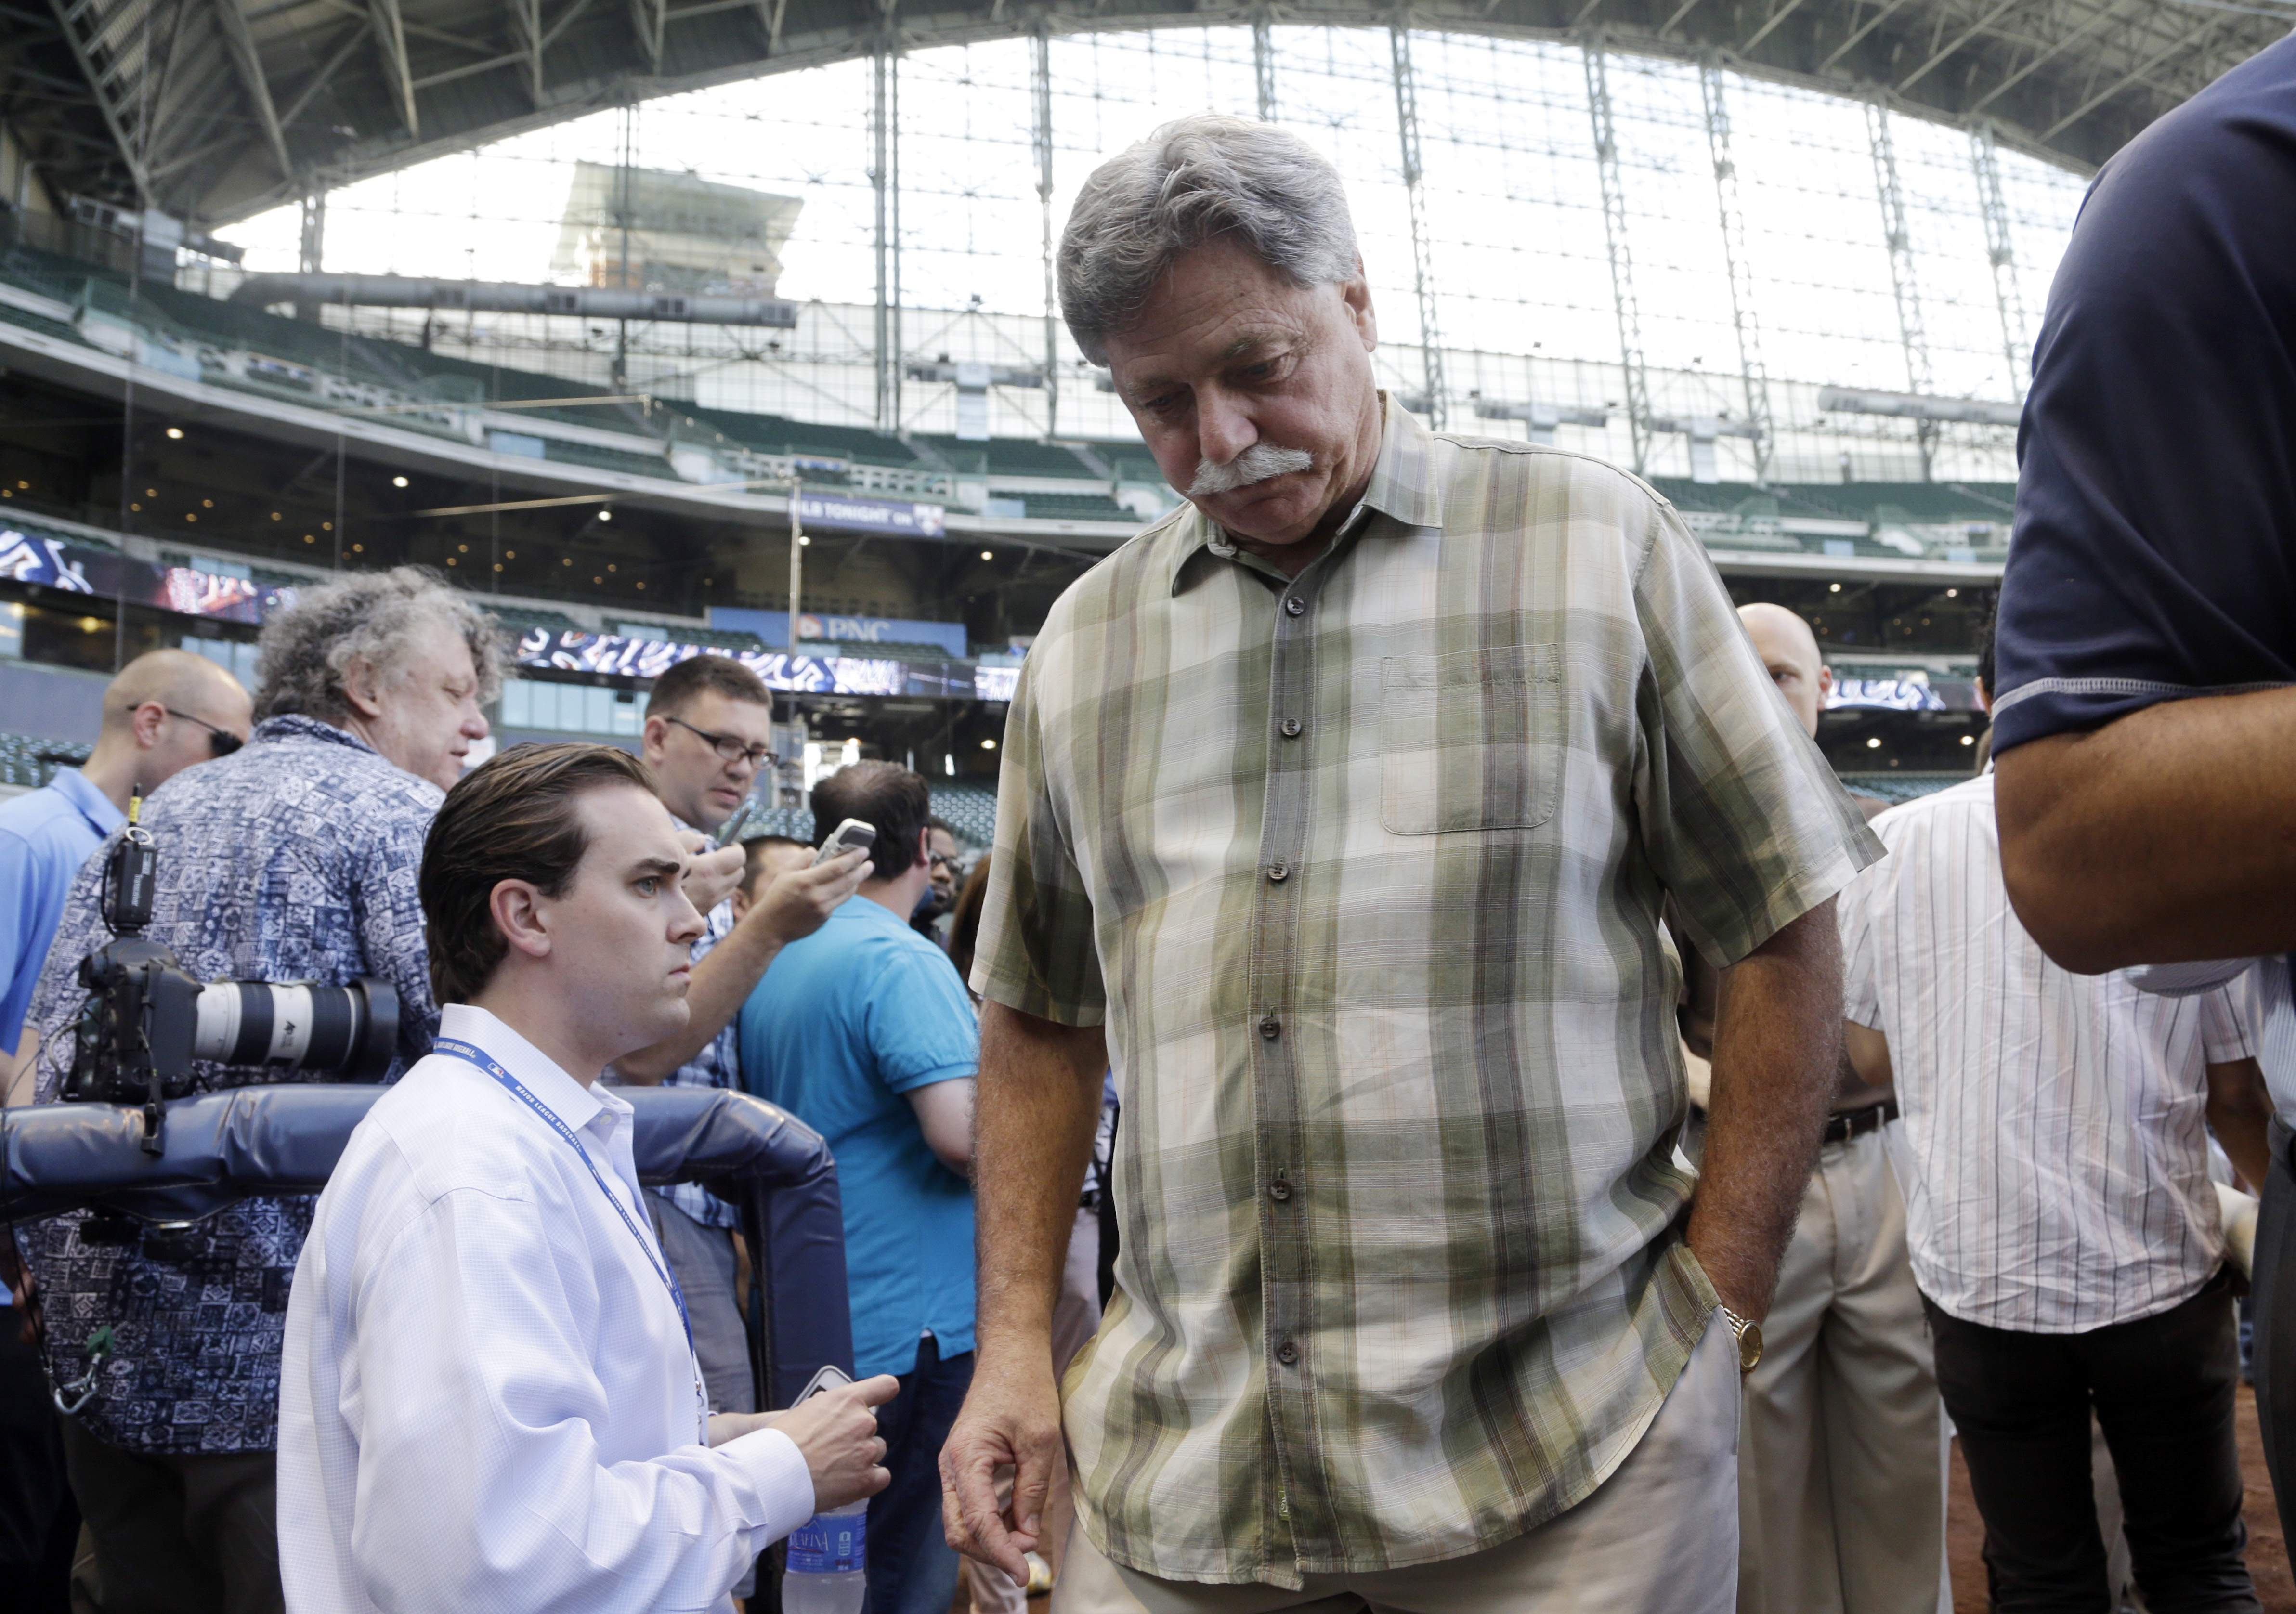 Milwaukee Brewers general manager Doug Melvin walks back to the clubhouse after talking to reporters about Ryan Braun's MLB suspension before a game against the San Diego Padres Monday, July 22, 2013, in Milwaukee. Braun, a former National League MVP , ha